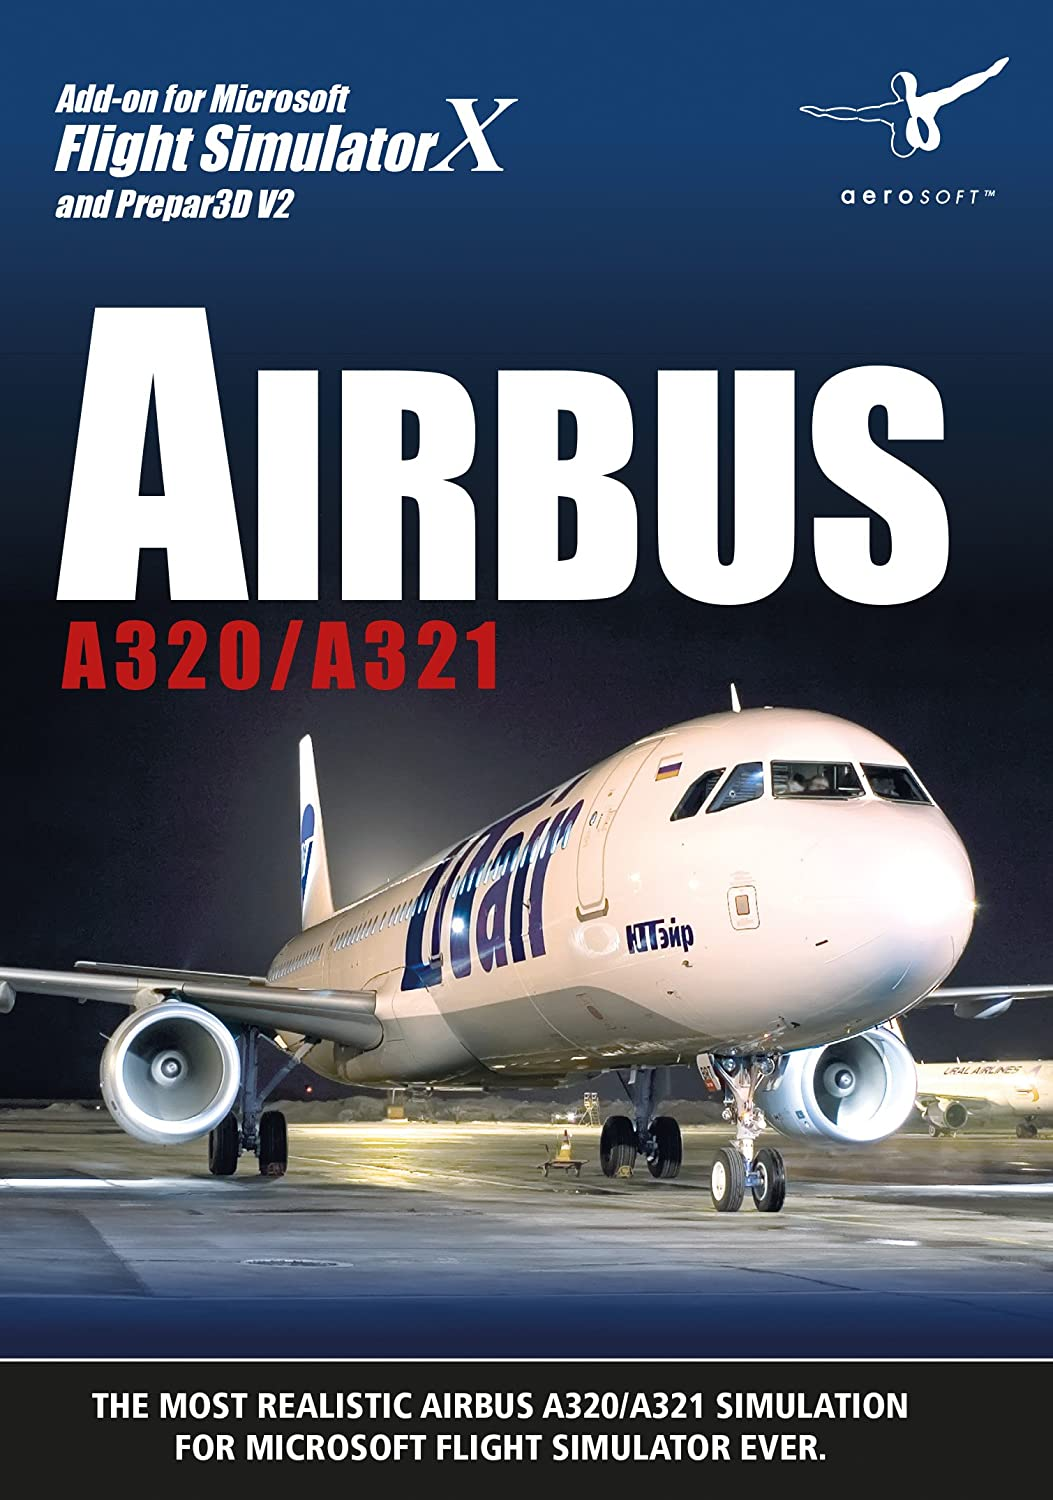 Airbus A320 / A321 PC: Amazon.de: Elektronik